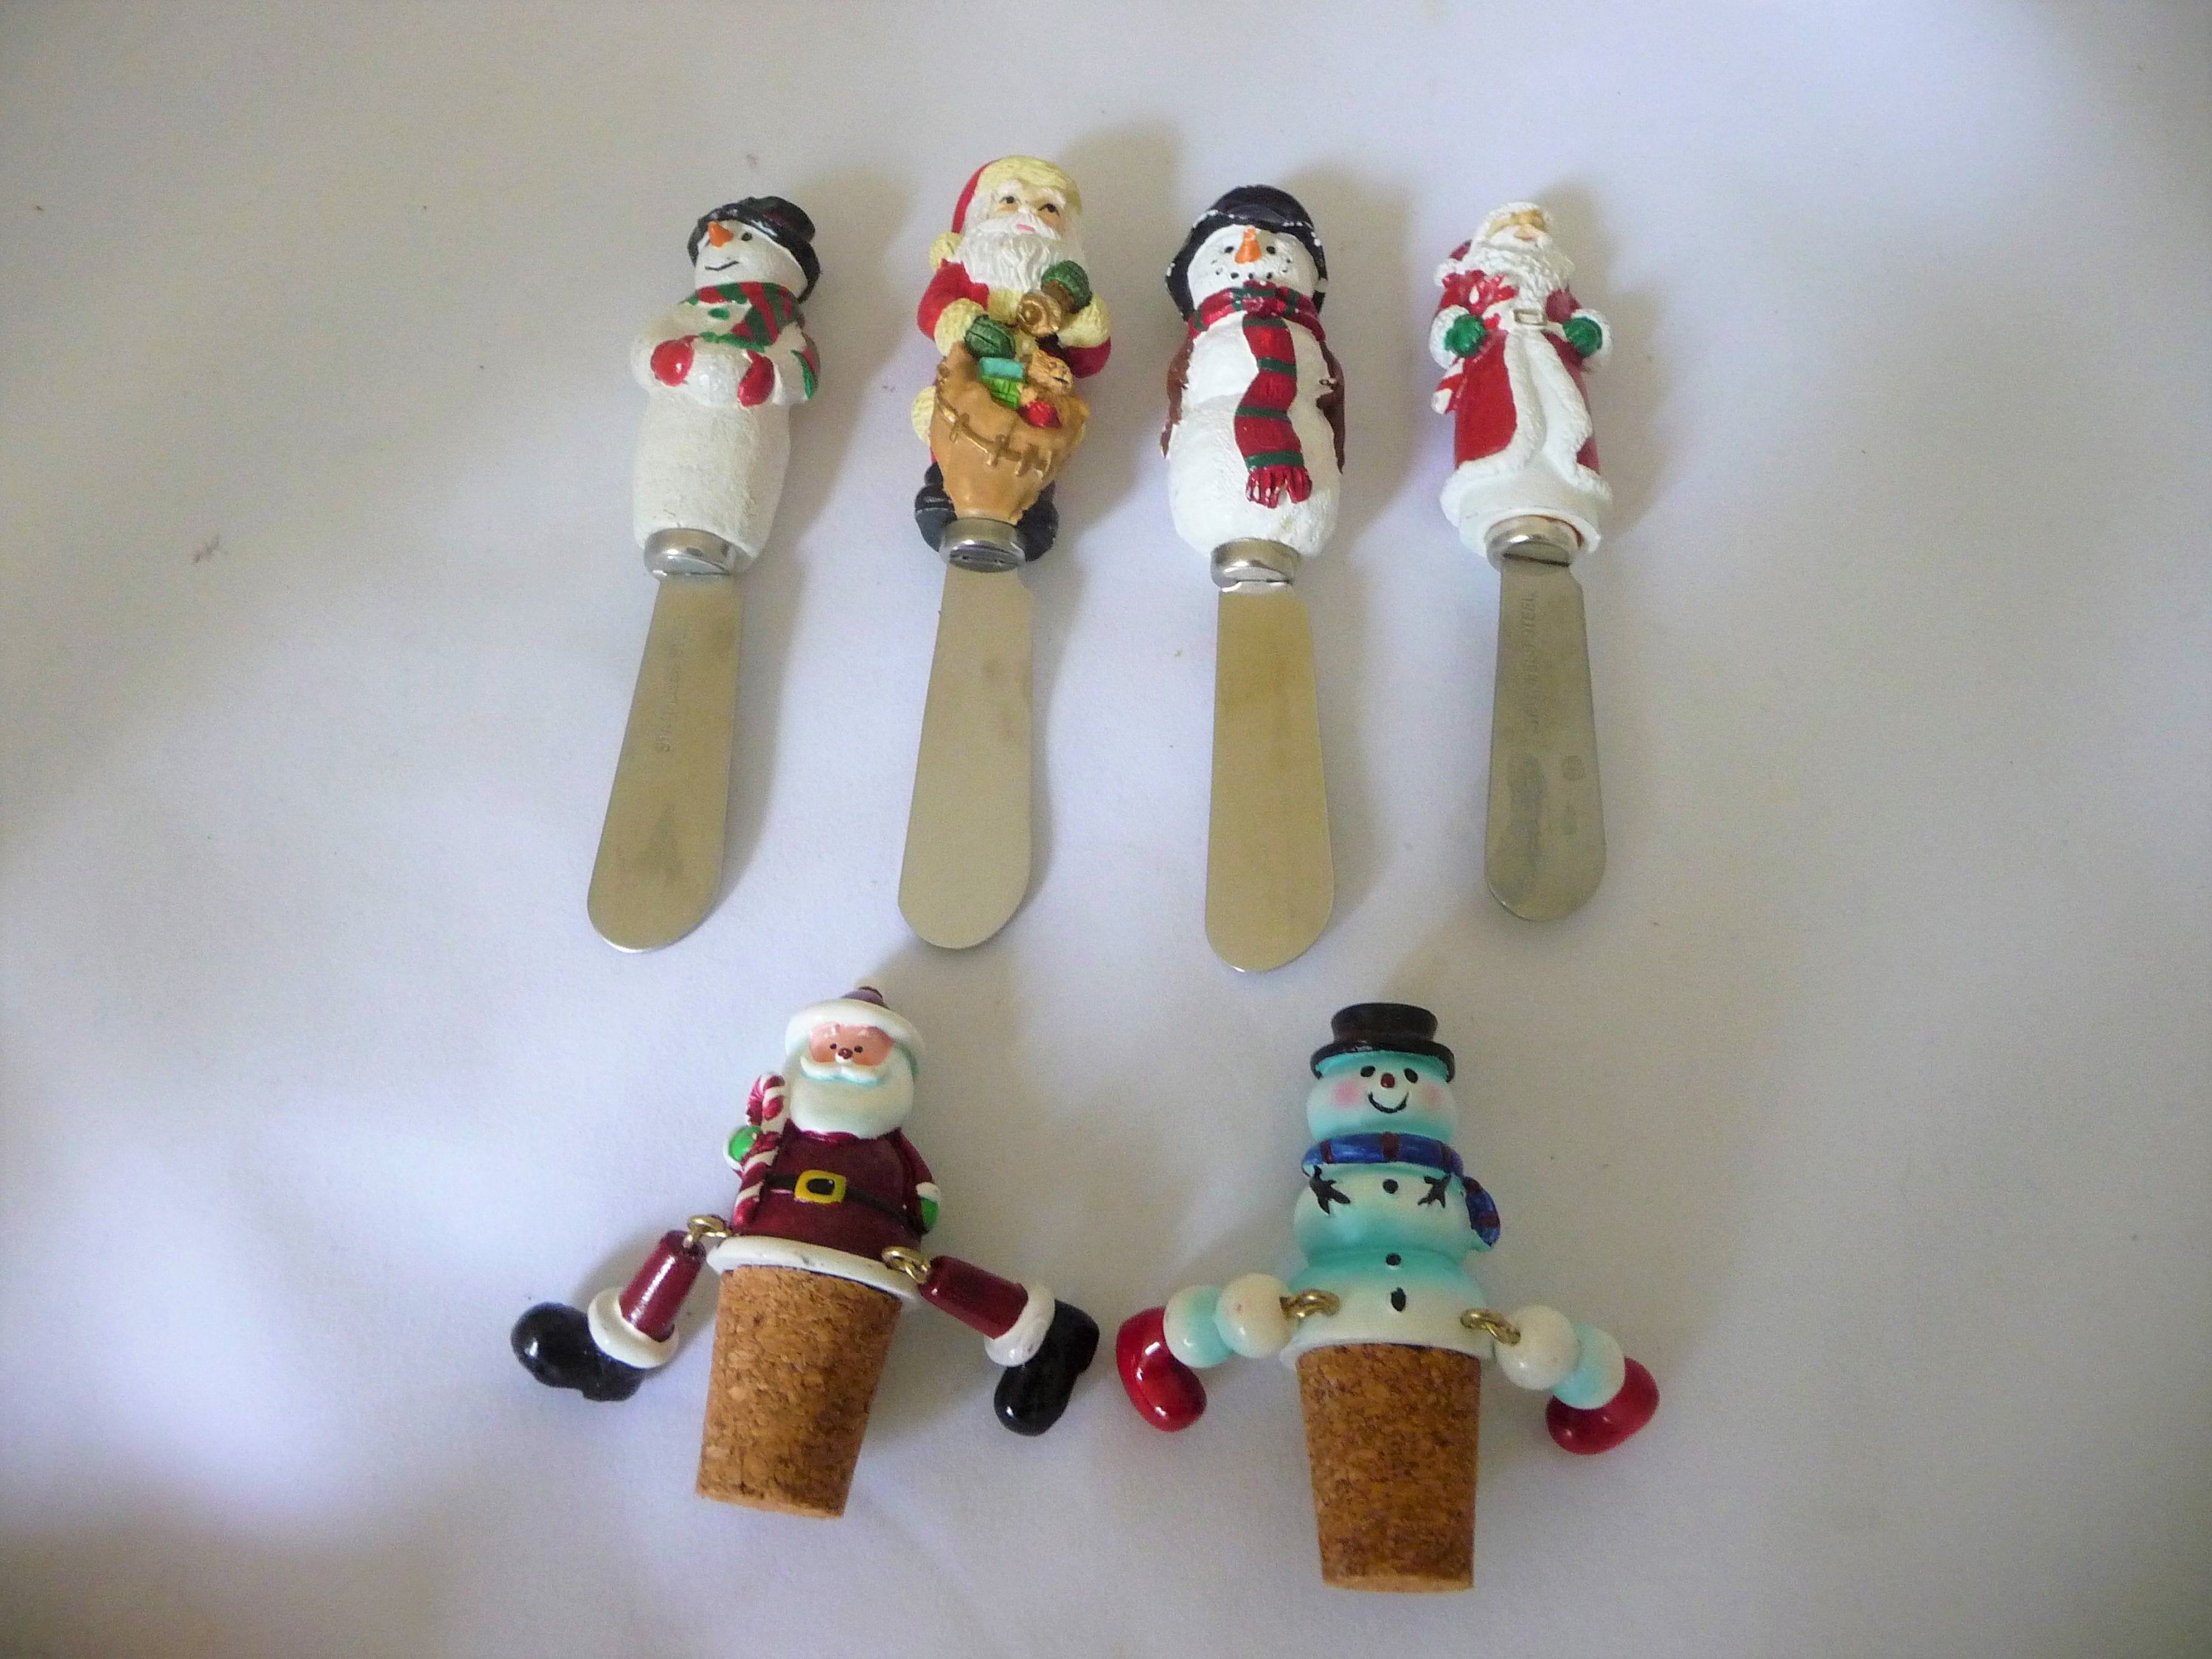 Christmas butter knives and wine corks wine cork butter